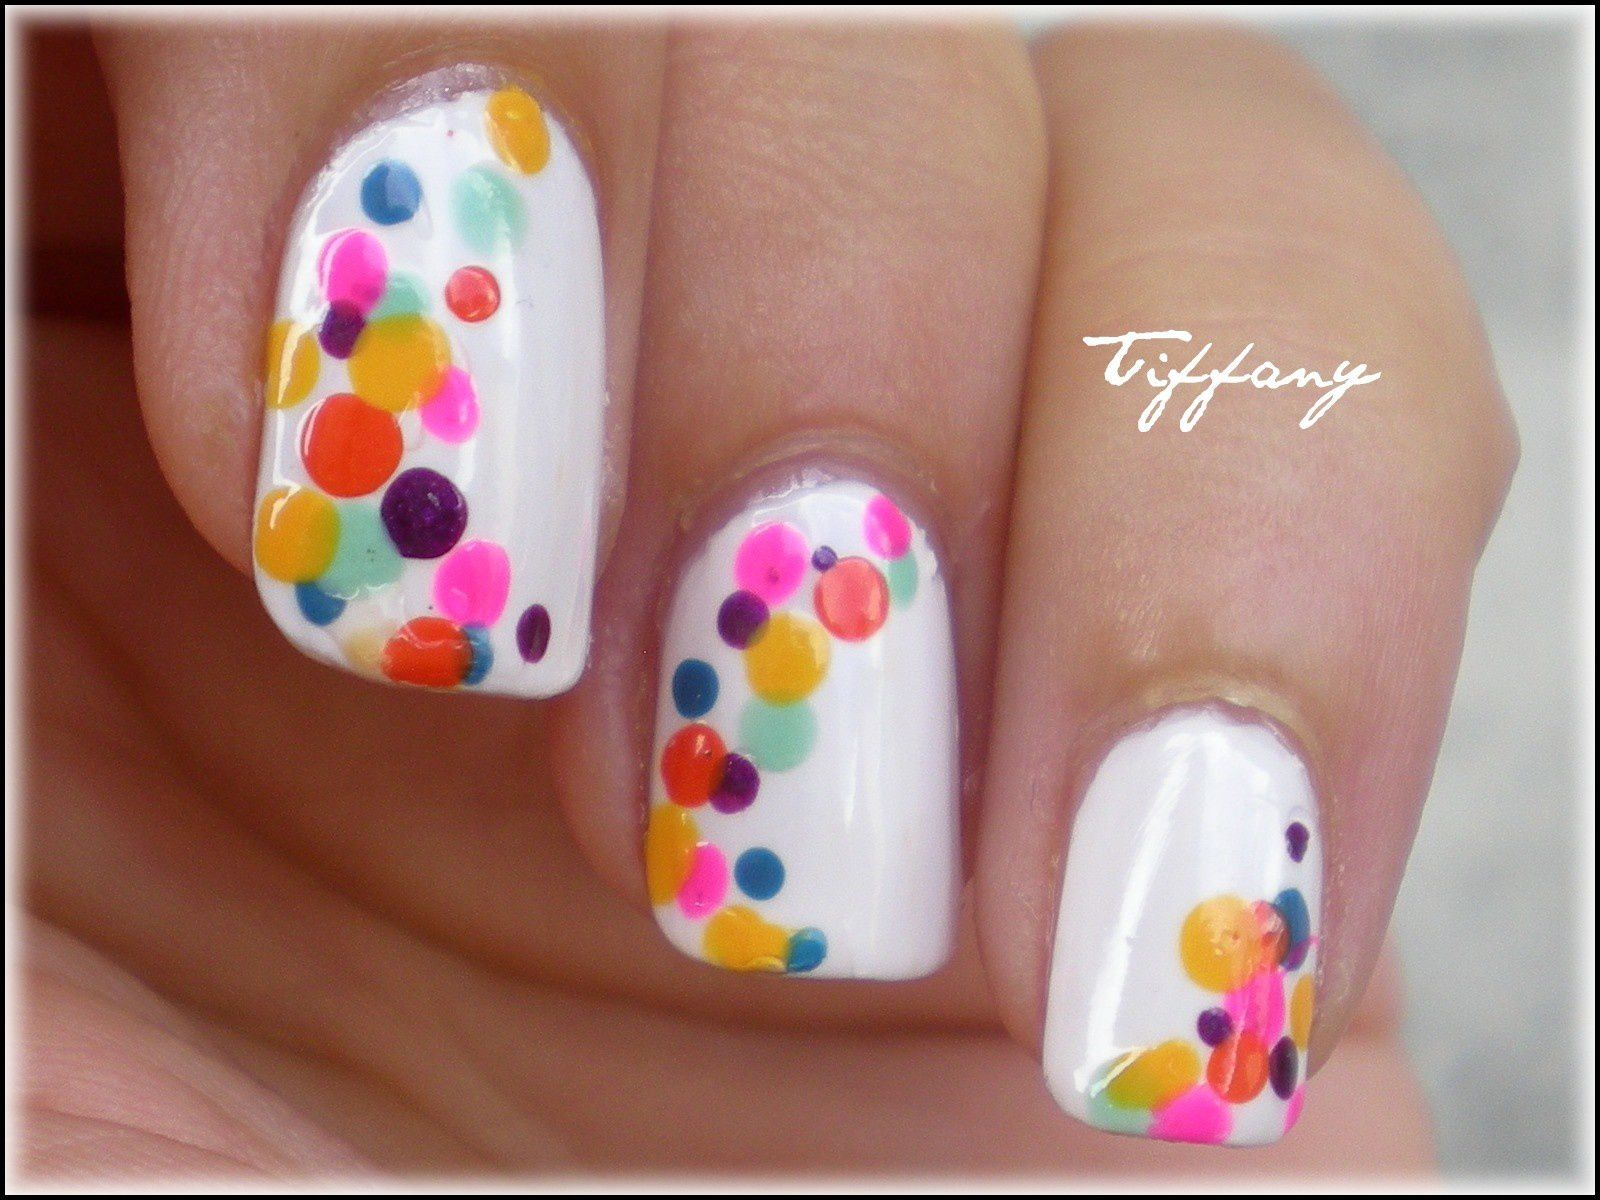 ongles 28.08.11 (1)